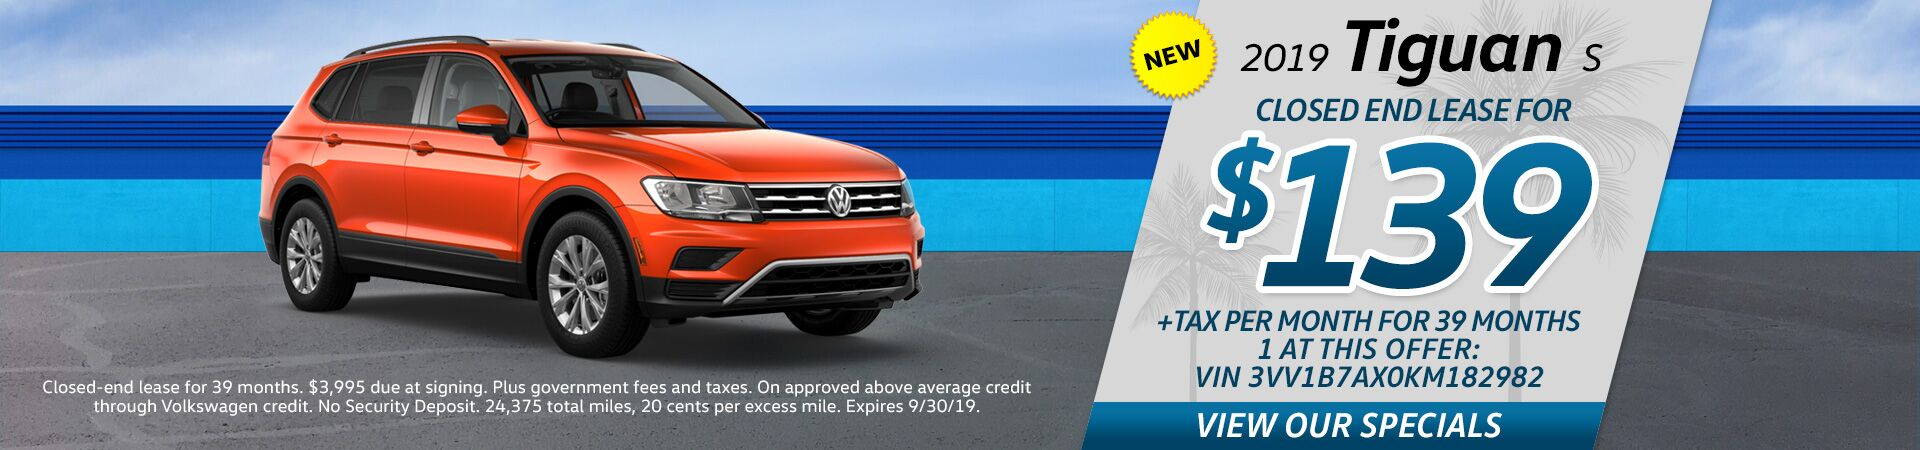 VW Tiguan Special Offer